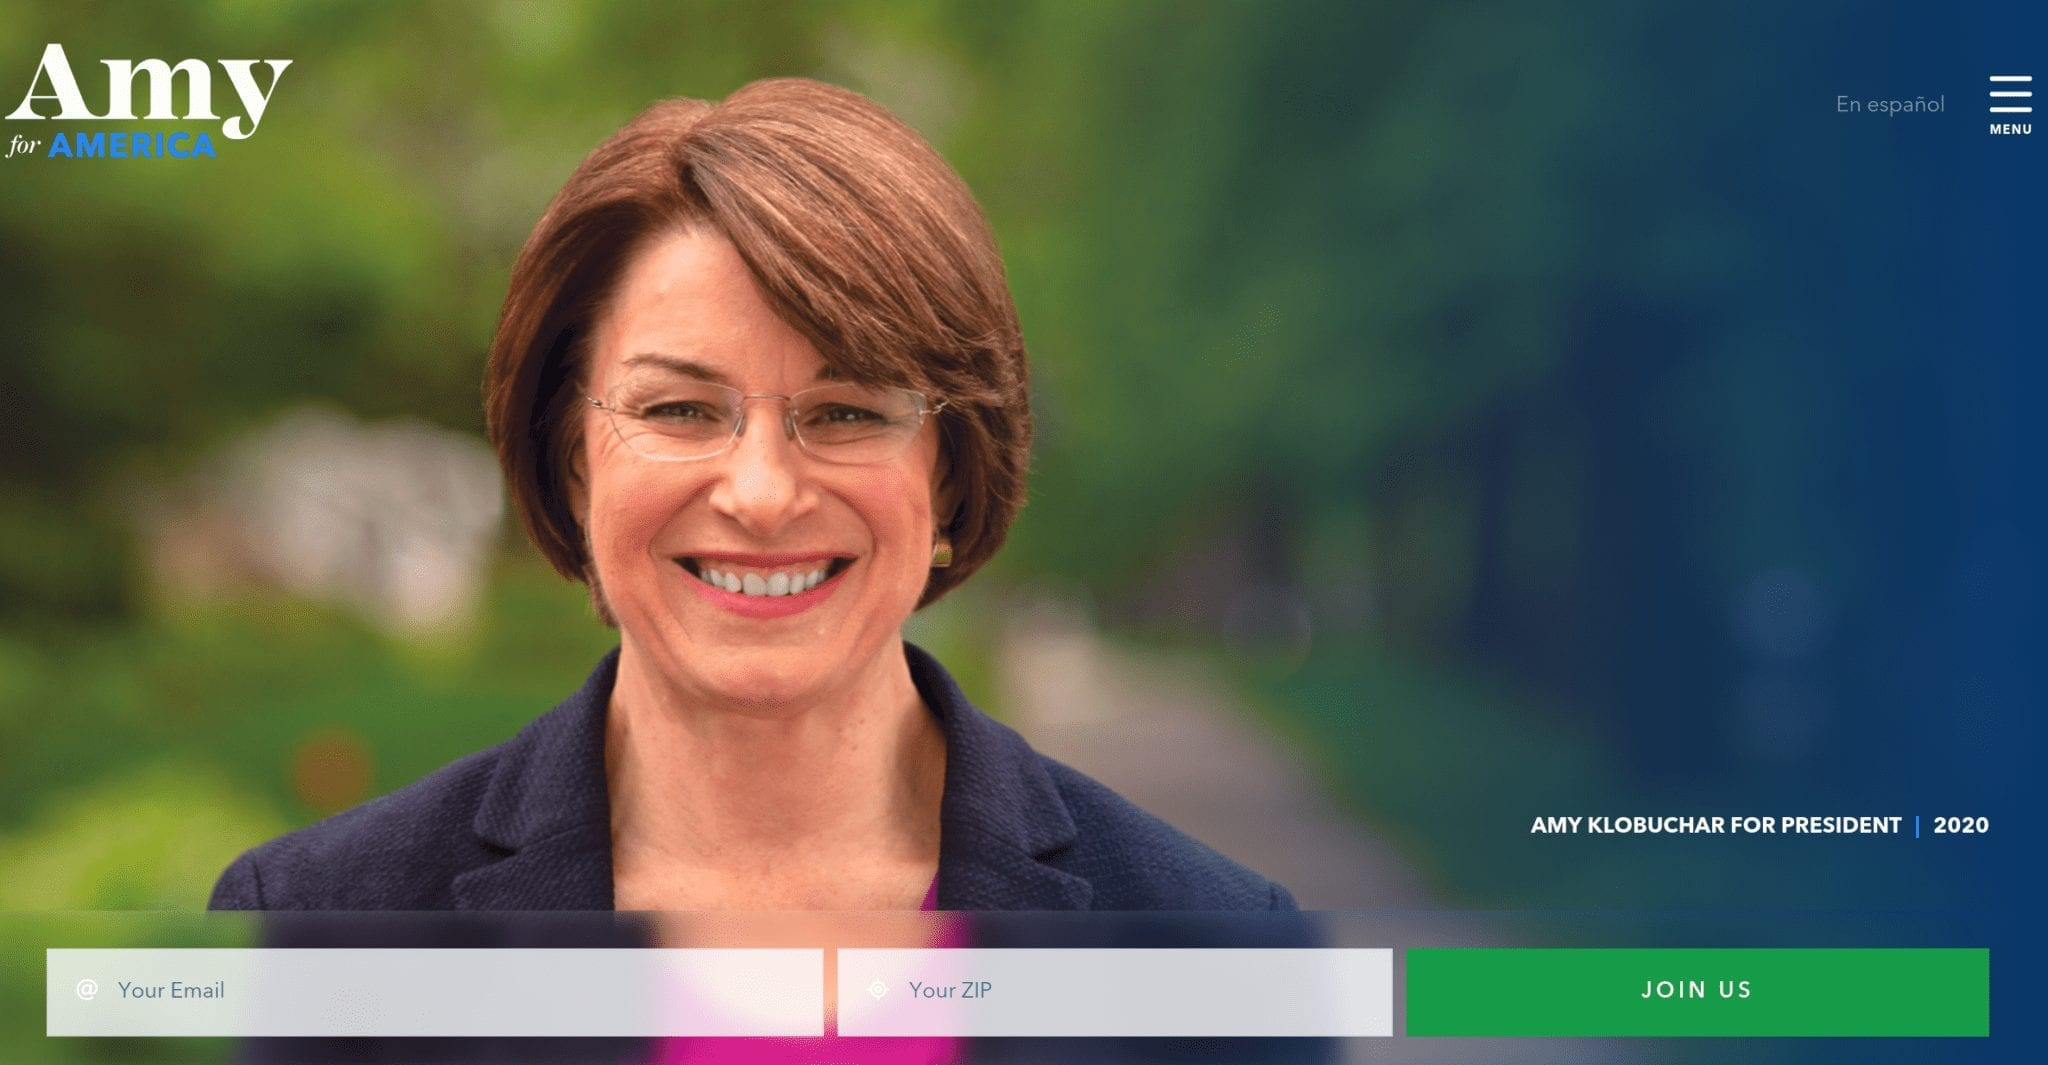 Amy Klobuchar 2020 campaign website